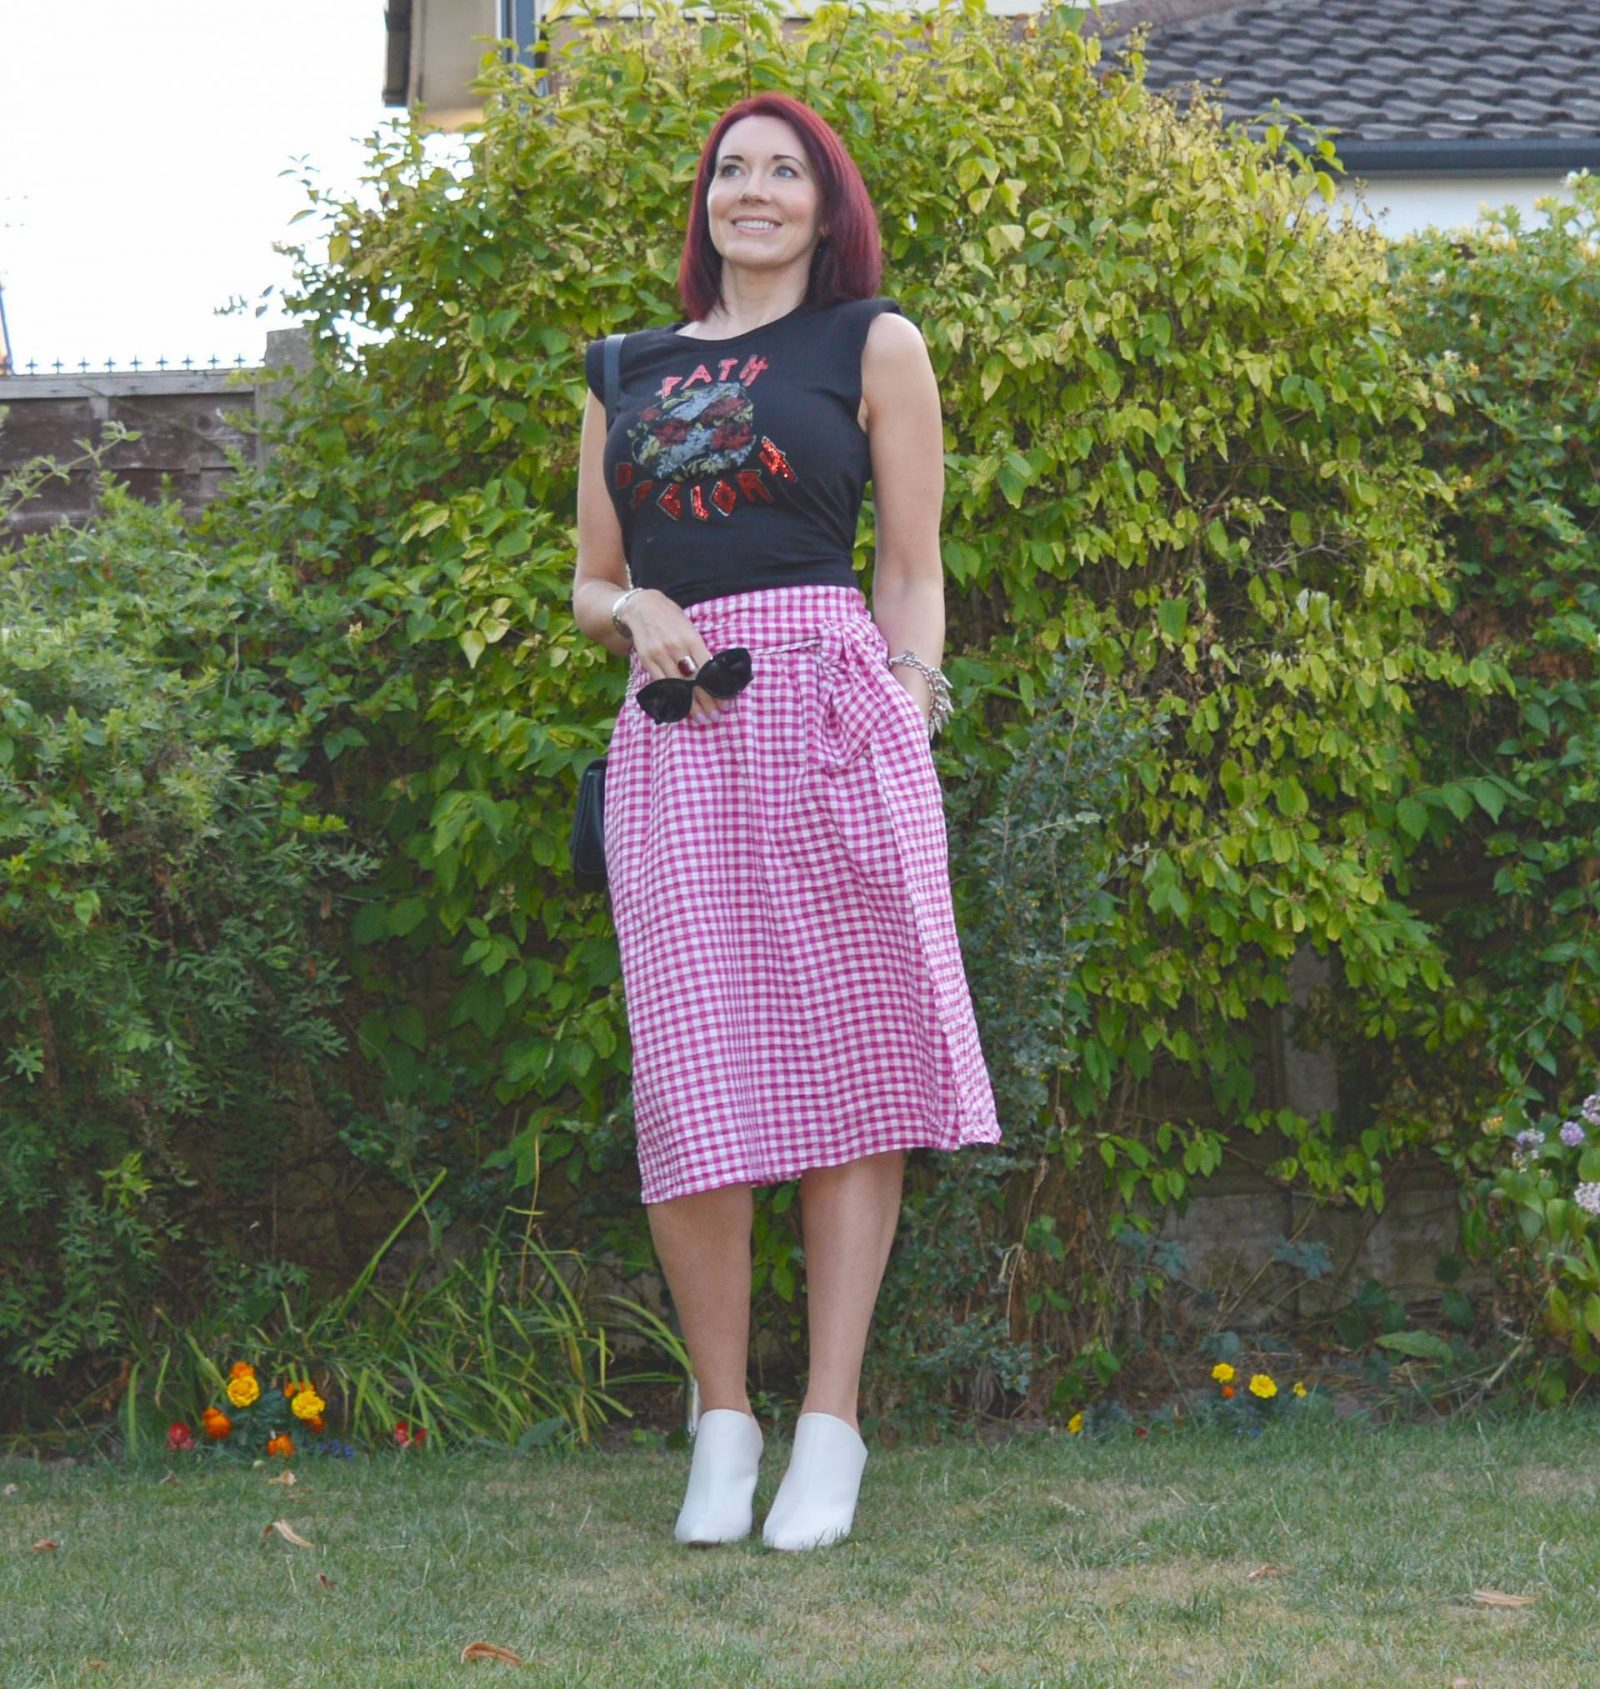 Style Not Age July Challenge - Not Square with Gingham